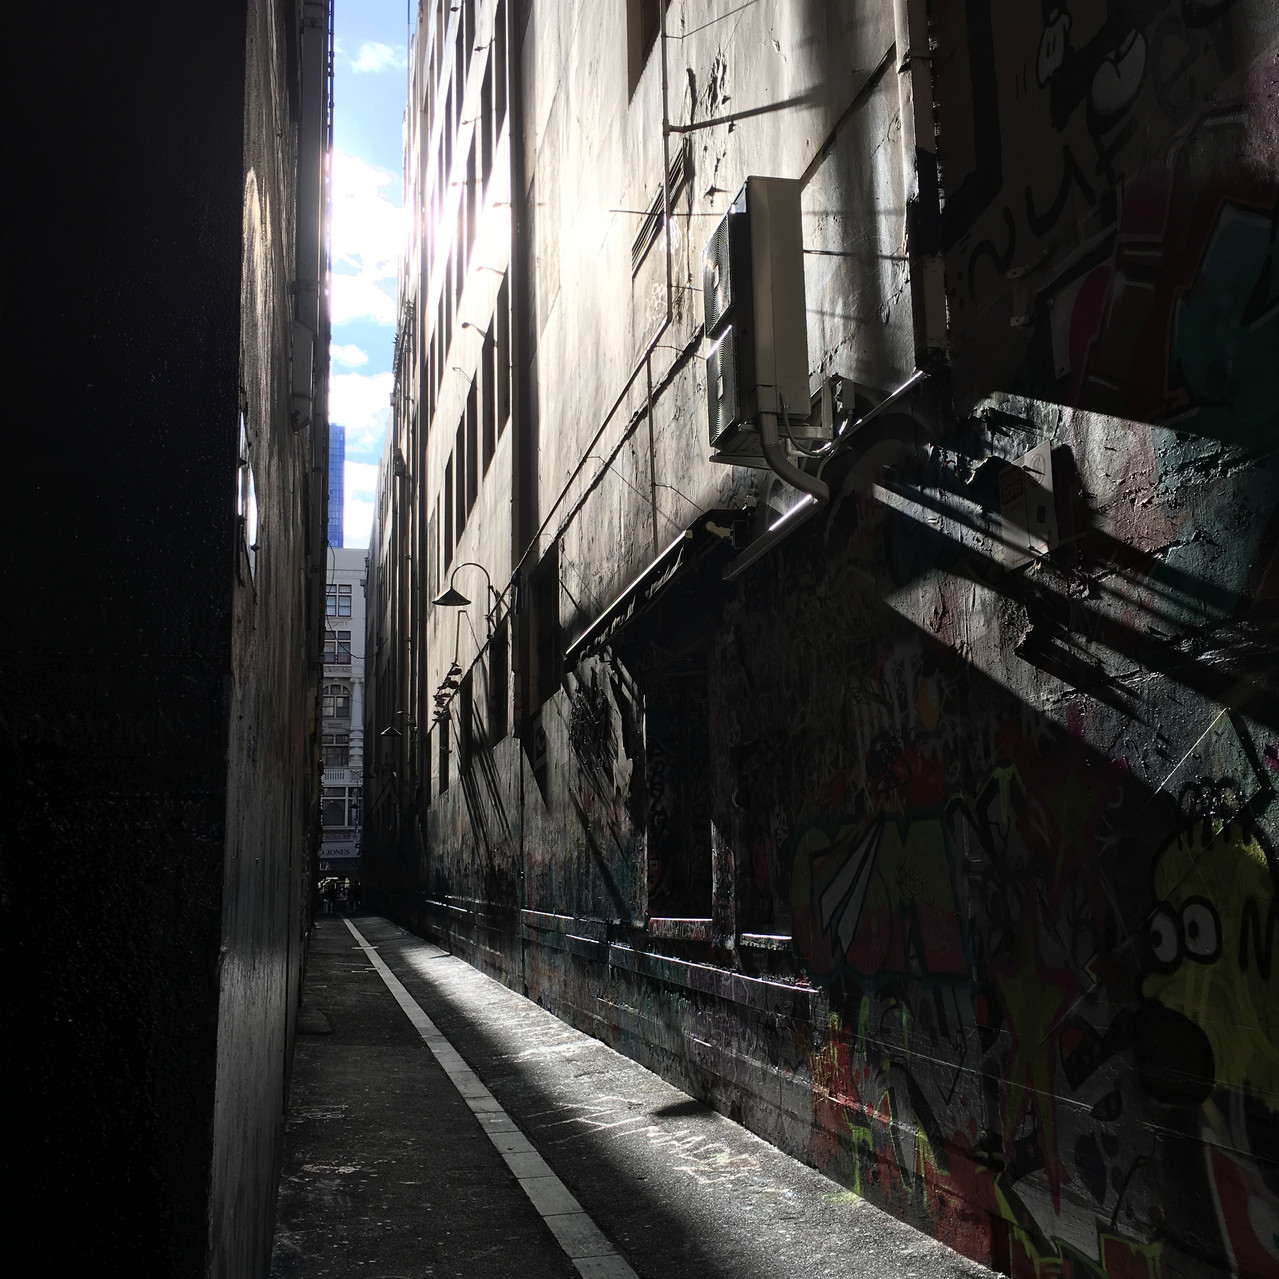 Union Lane in late afternoon hard light